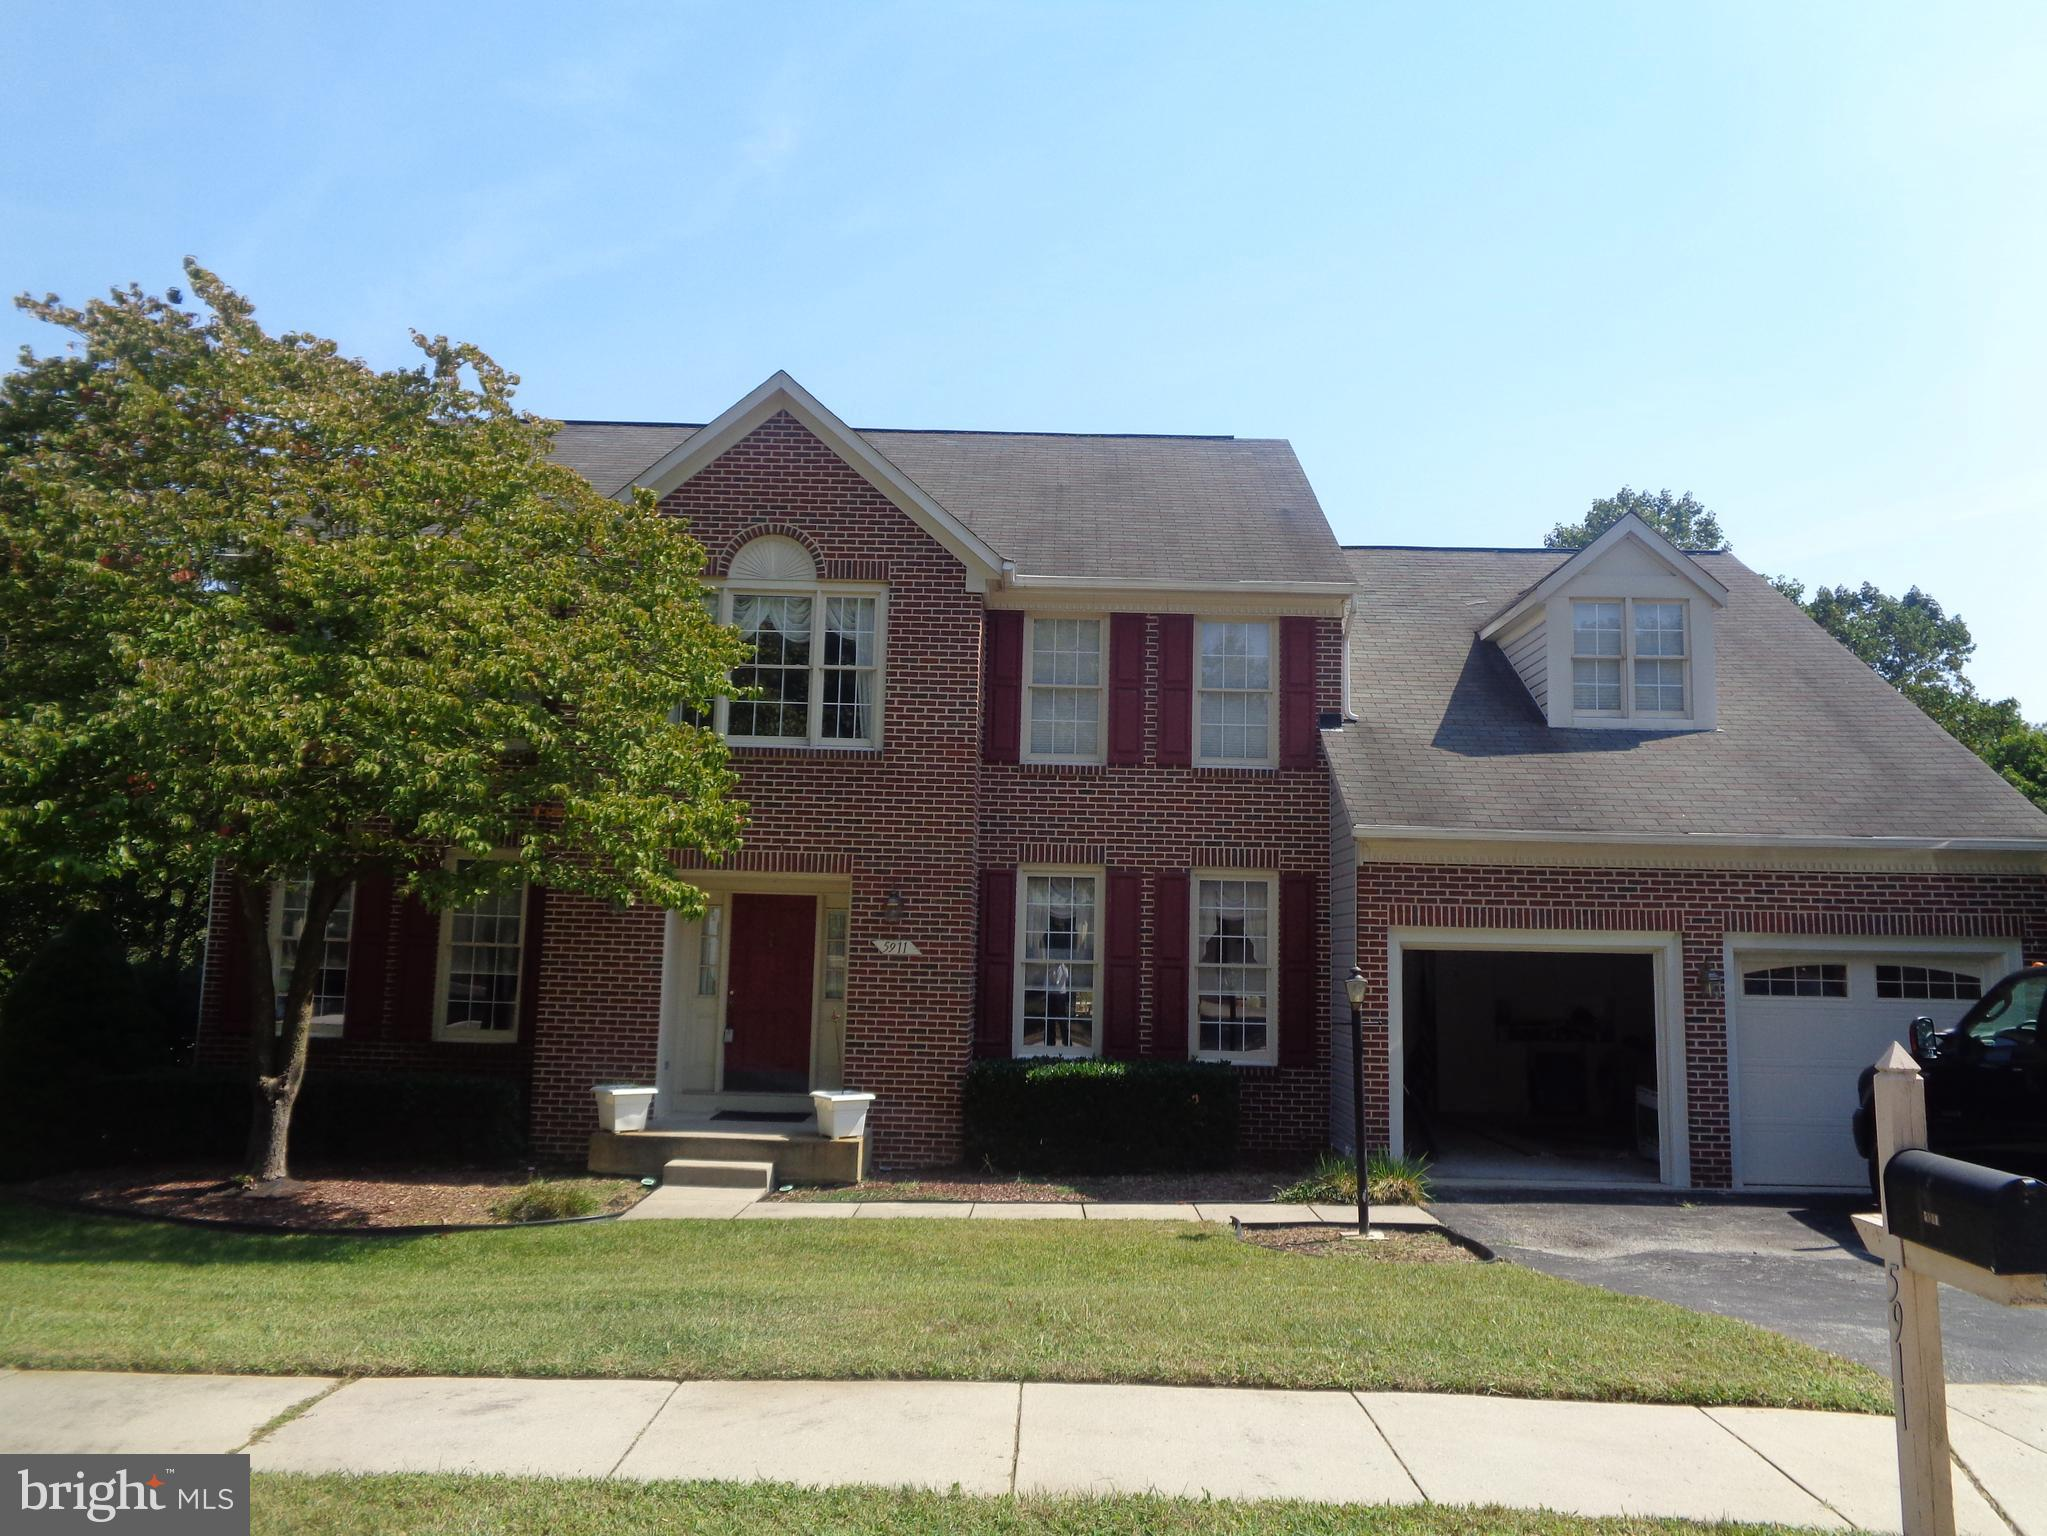 5911 FOXHALL MANOR DRIVE, CATONSVILLE, MD 21228